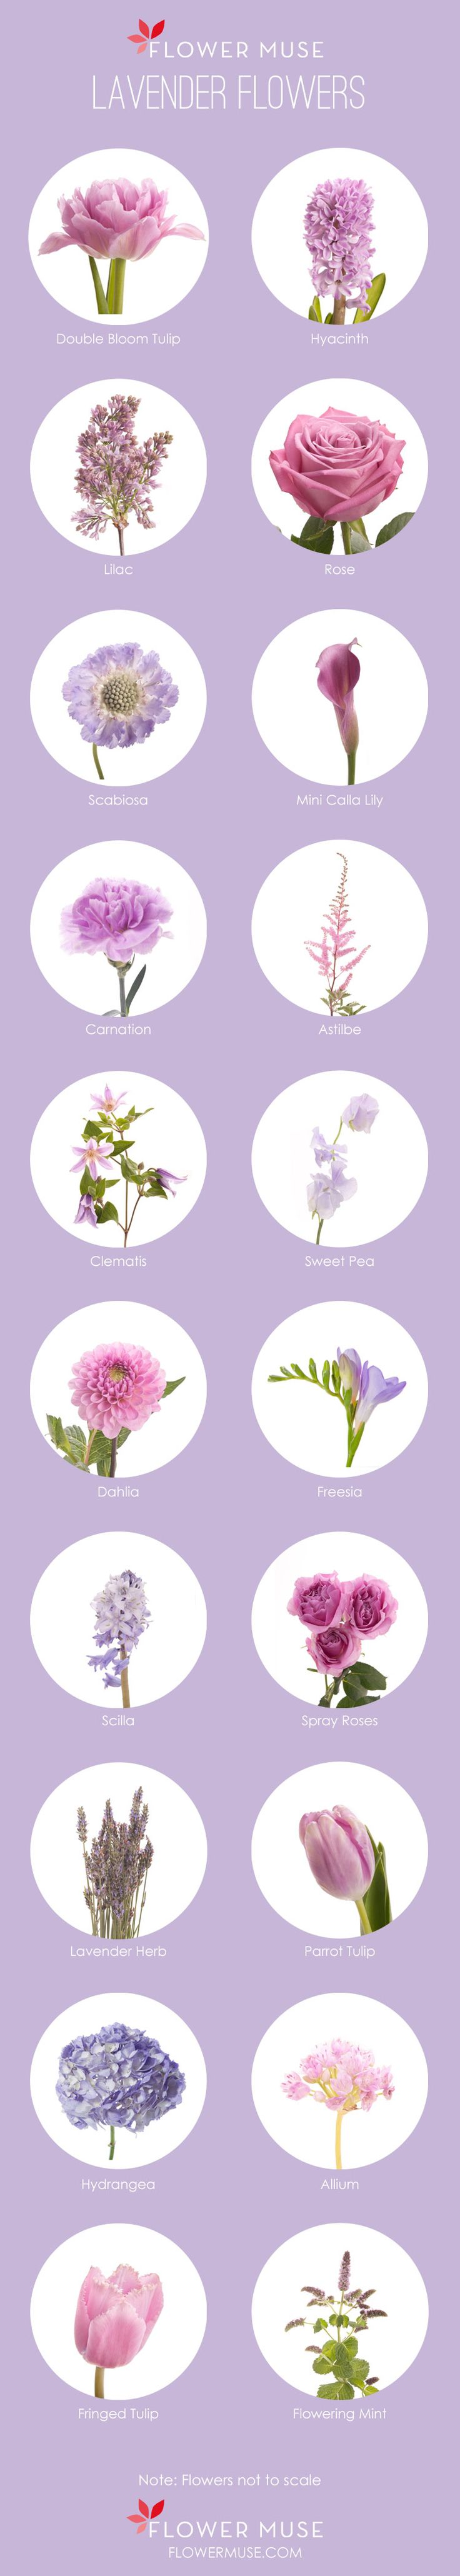 Our Favorite: Lavender Flowers. See more on Flower Muse Blog: http://www.flowermuse.com/blog/favorite-lavender-flowers/